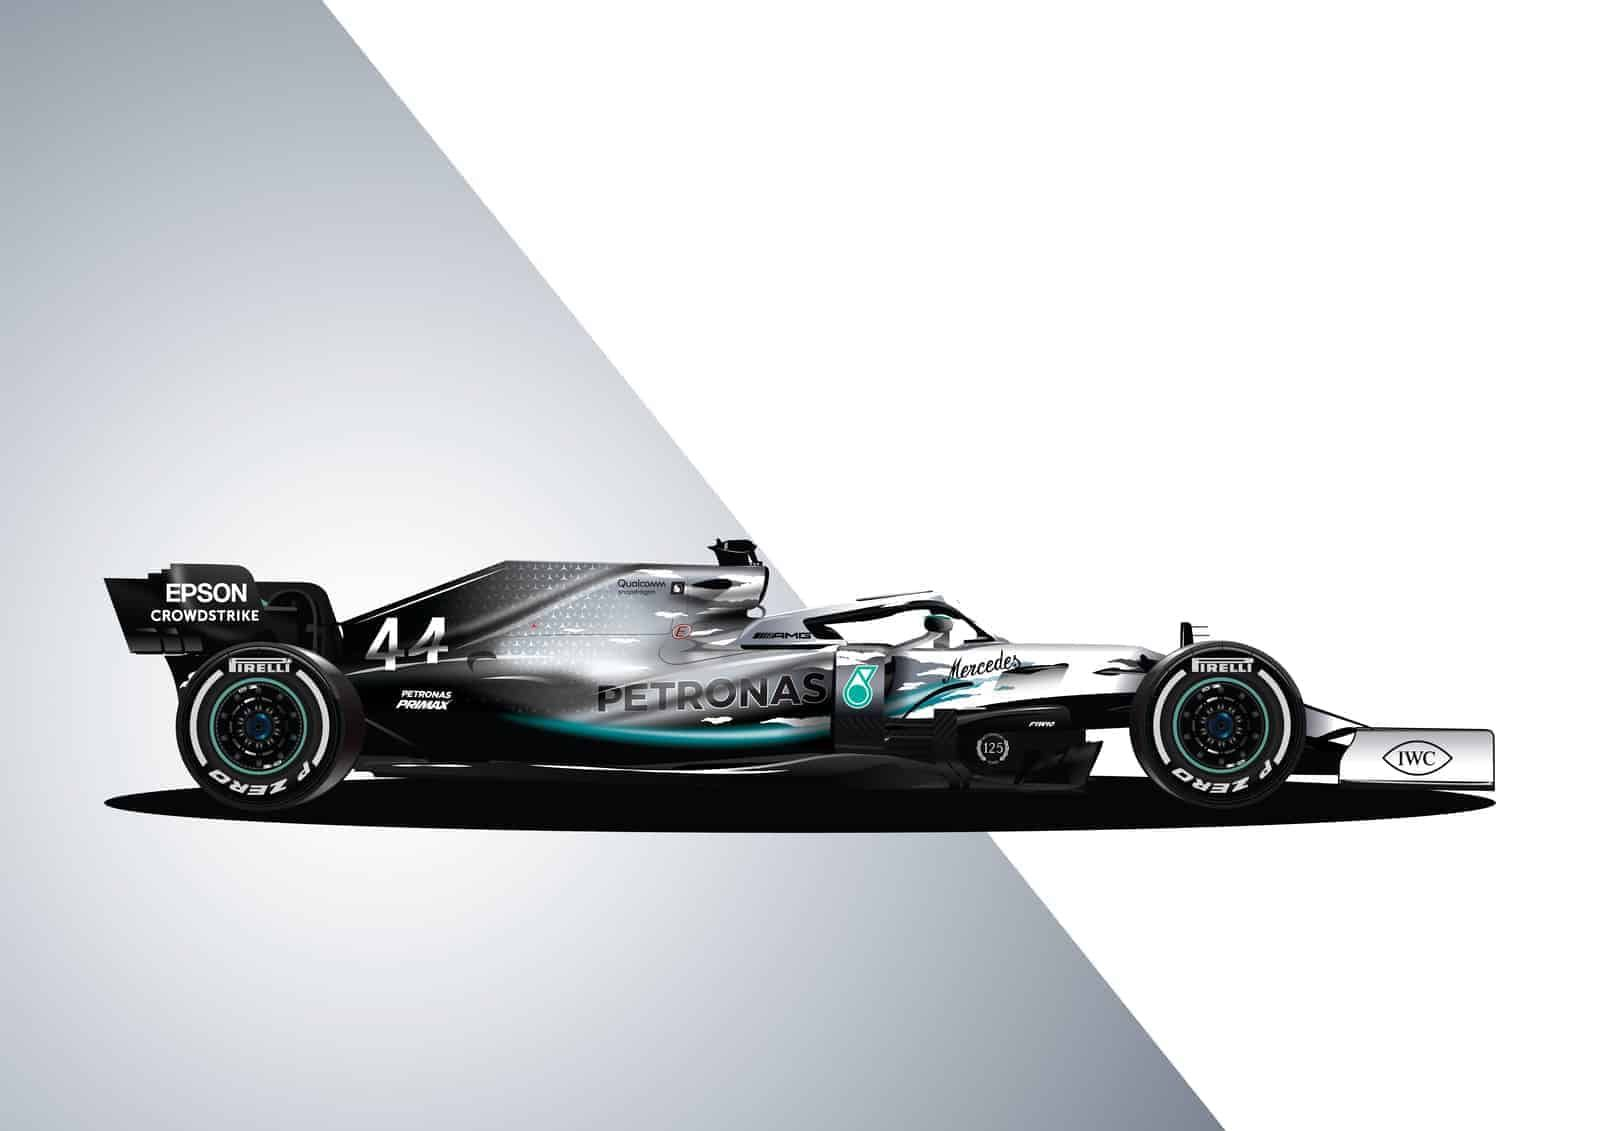 Mercedes W10 125 Years The Gpbox Mercedes F1 Poster Mercedes Amg Gt R [ 1131 x 1600 Pixel ]